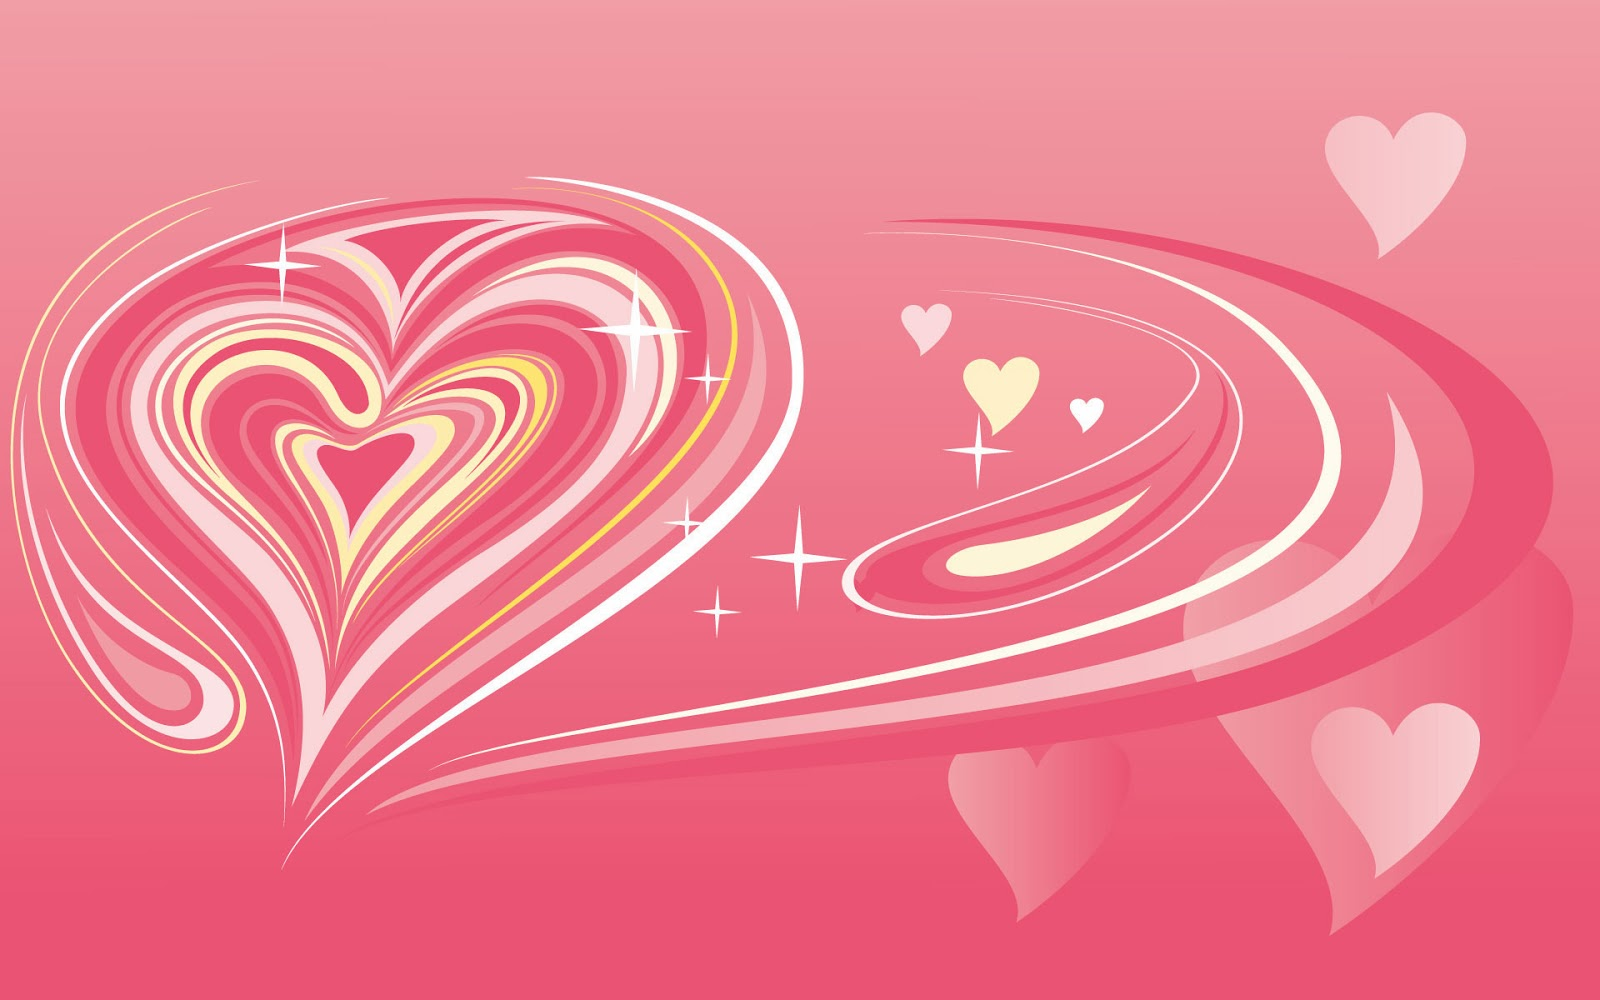 Love Wallpapers Jpg : Love Wallpapers Wallpaper Keren